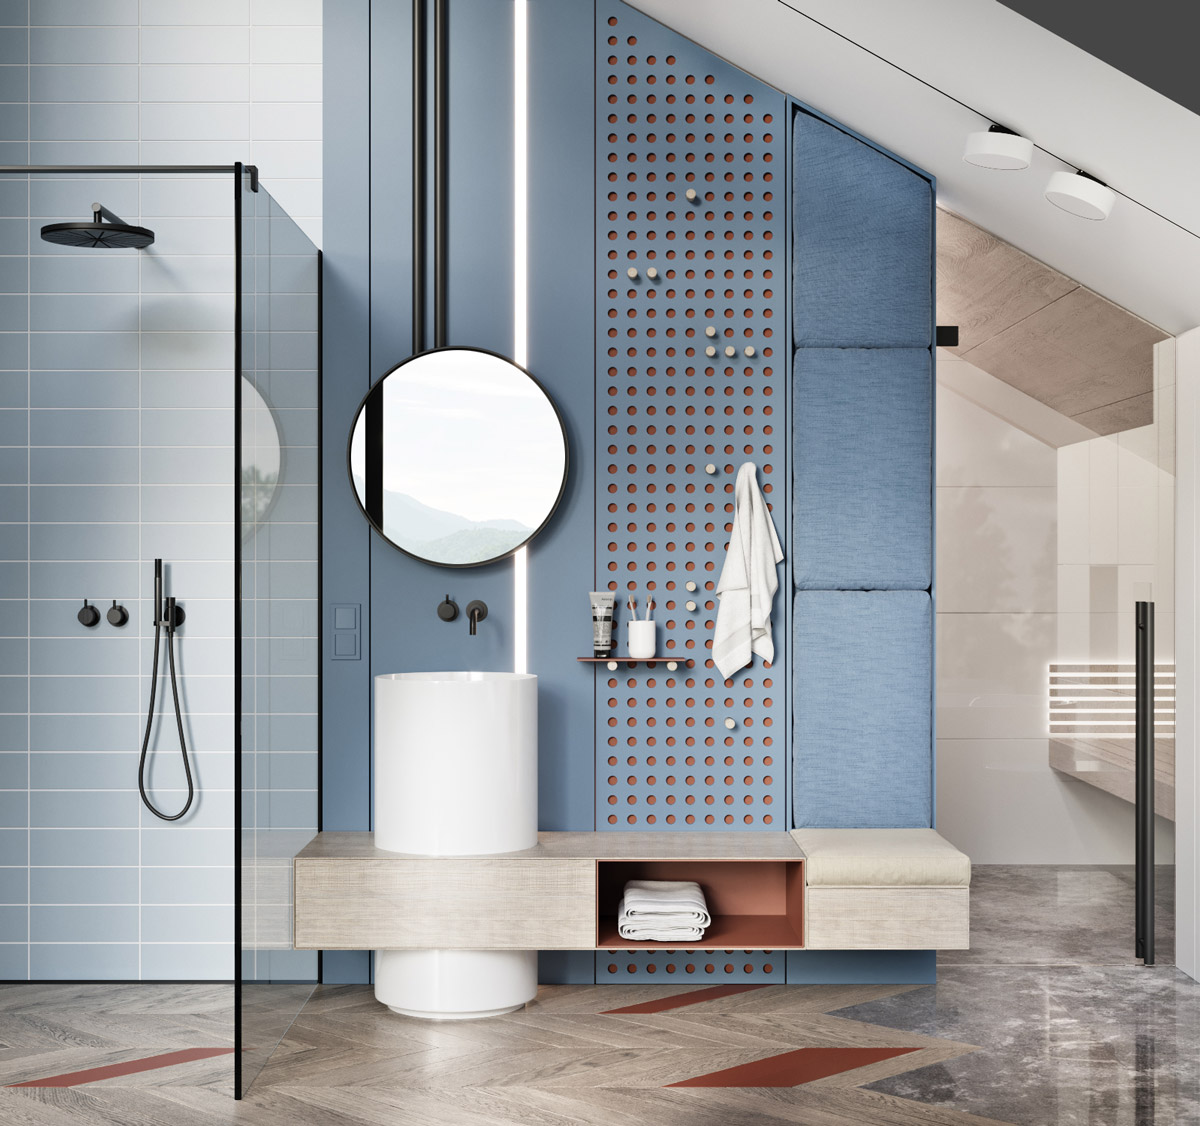 40 Modern Bathroom Vanities That Overflow With Style images 4